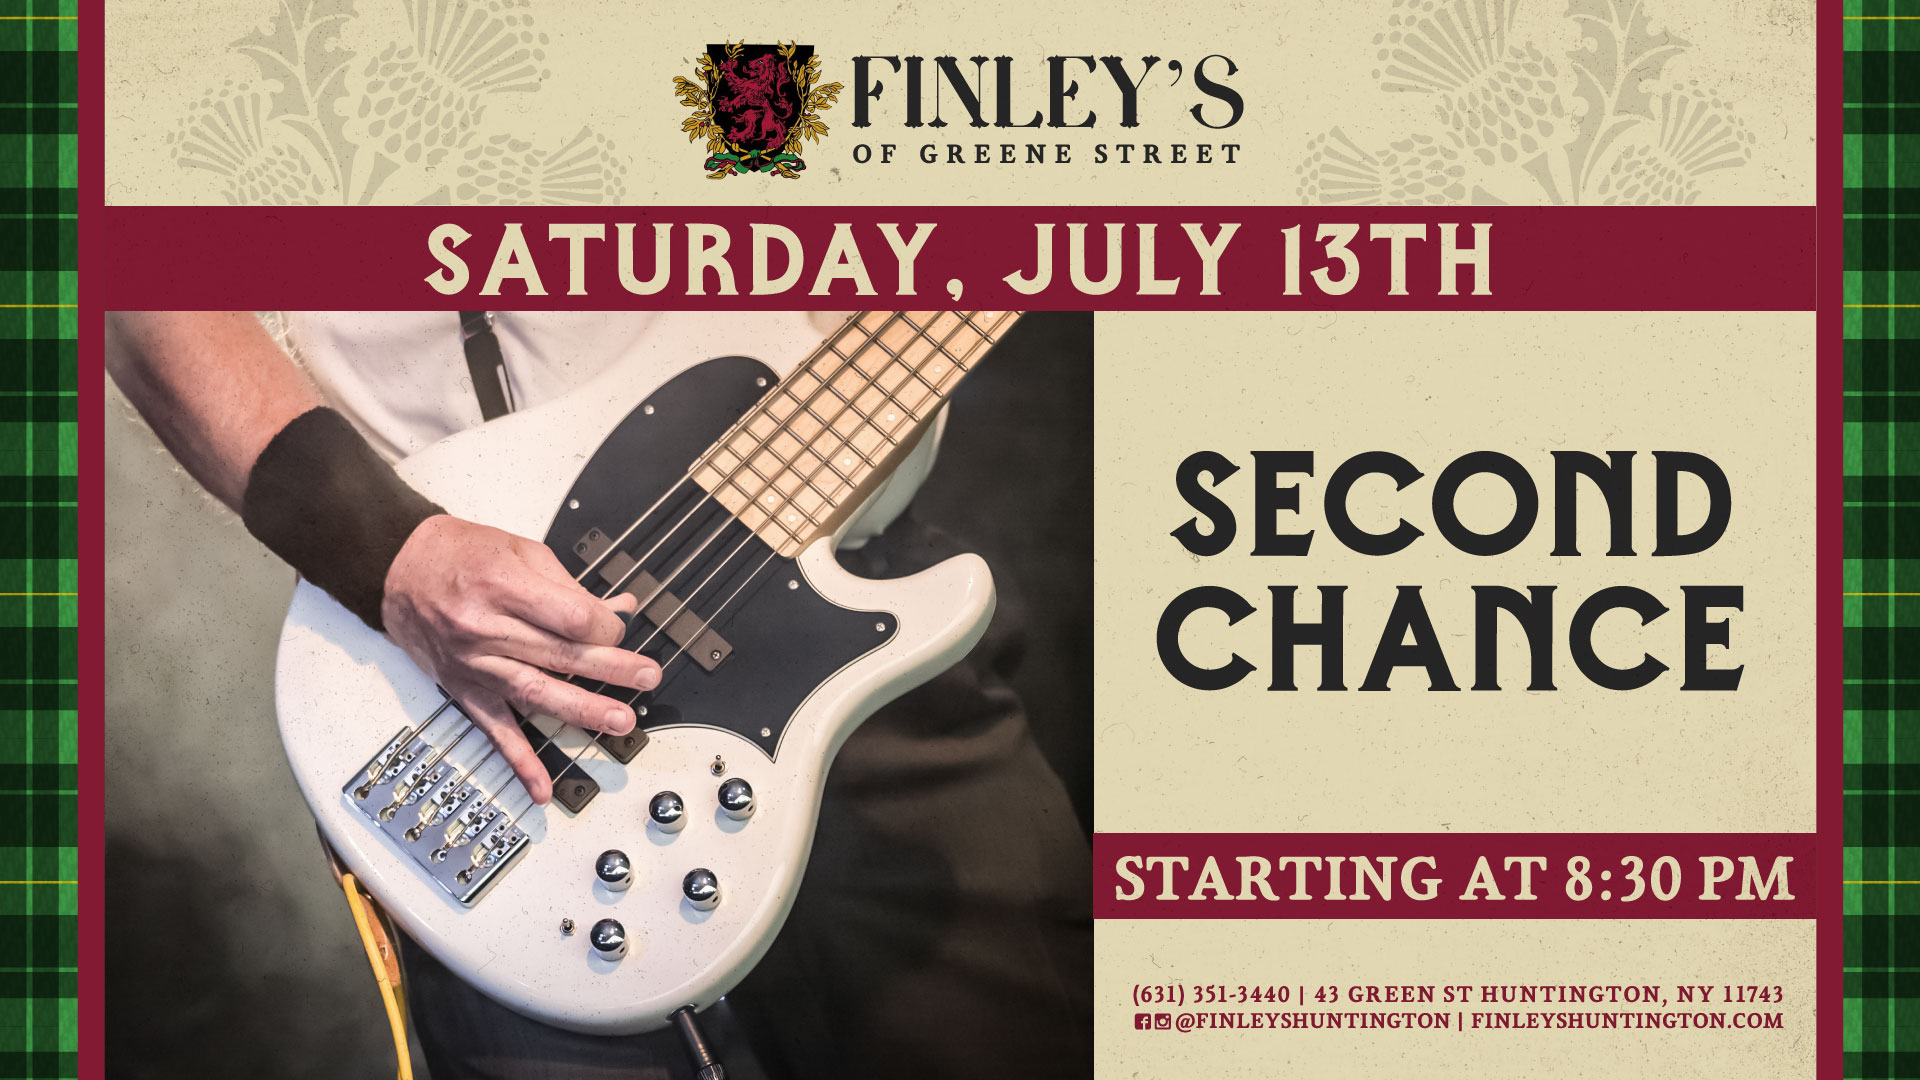 Flyer for live music with Second Chance on July 13th at 8:30pm.